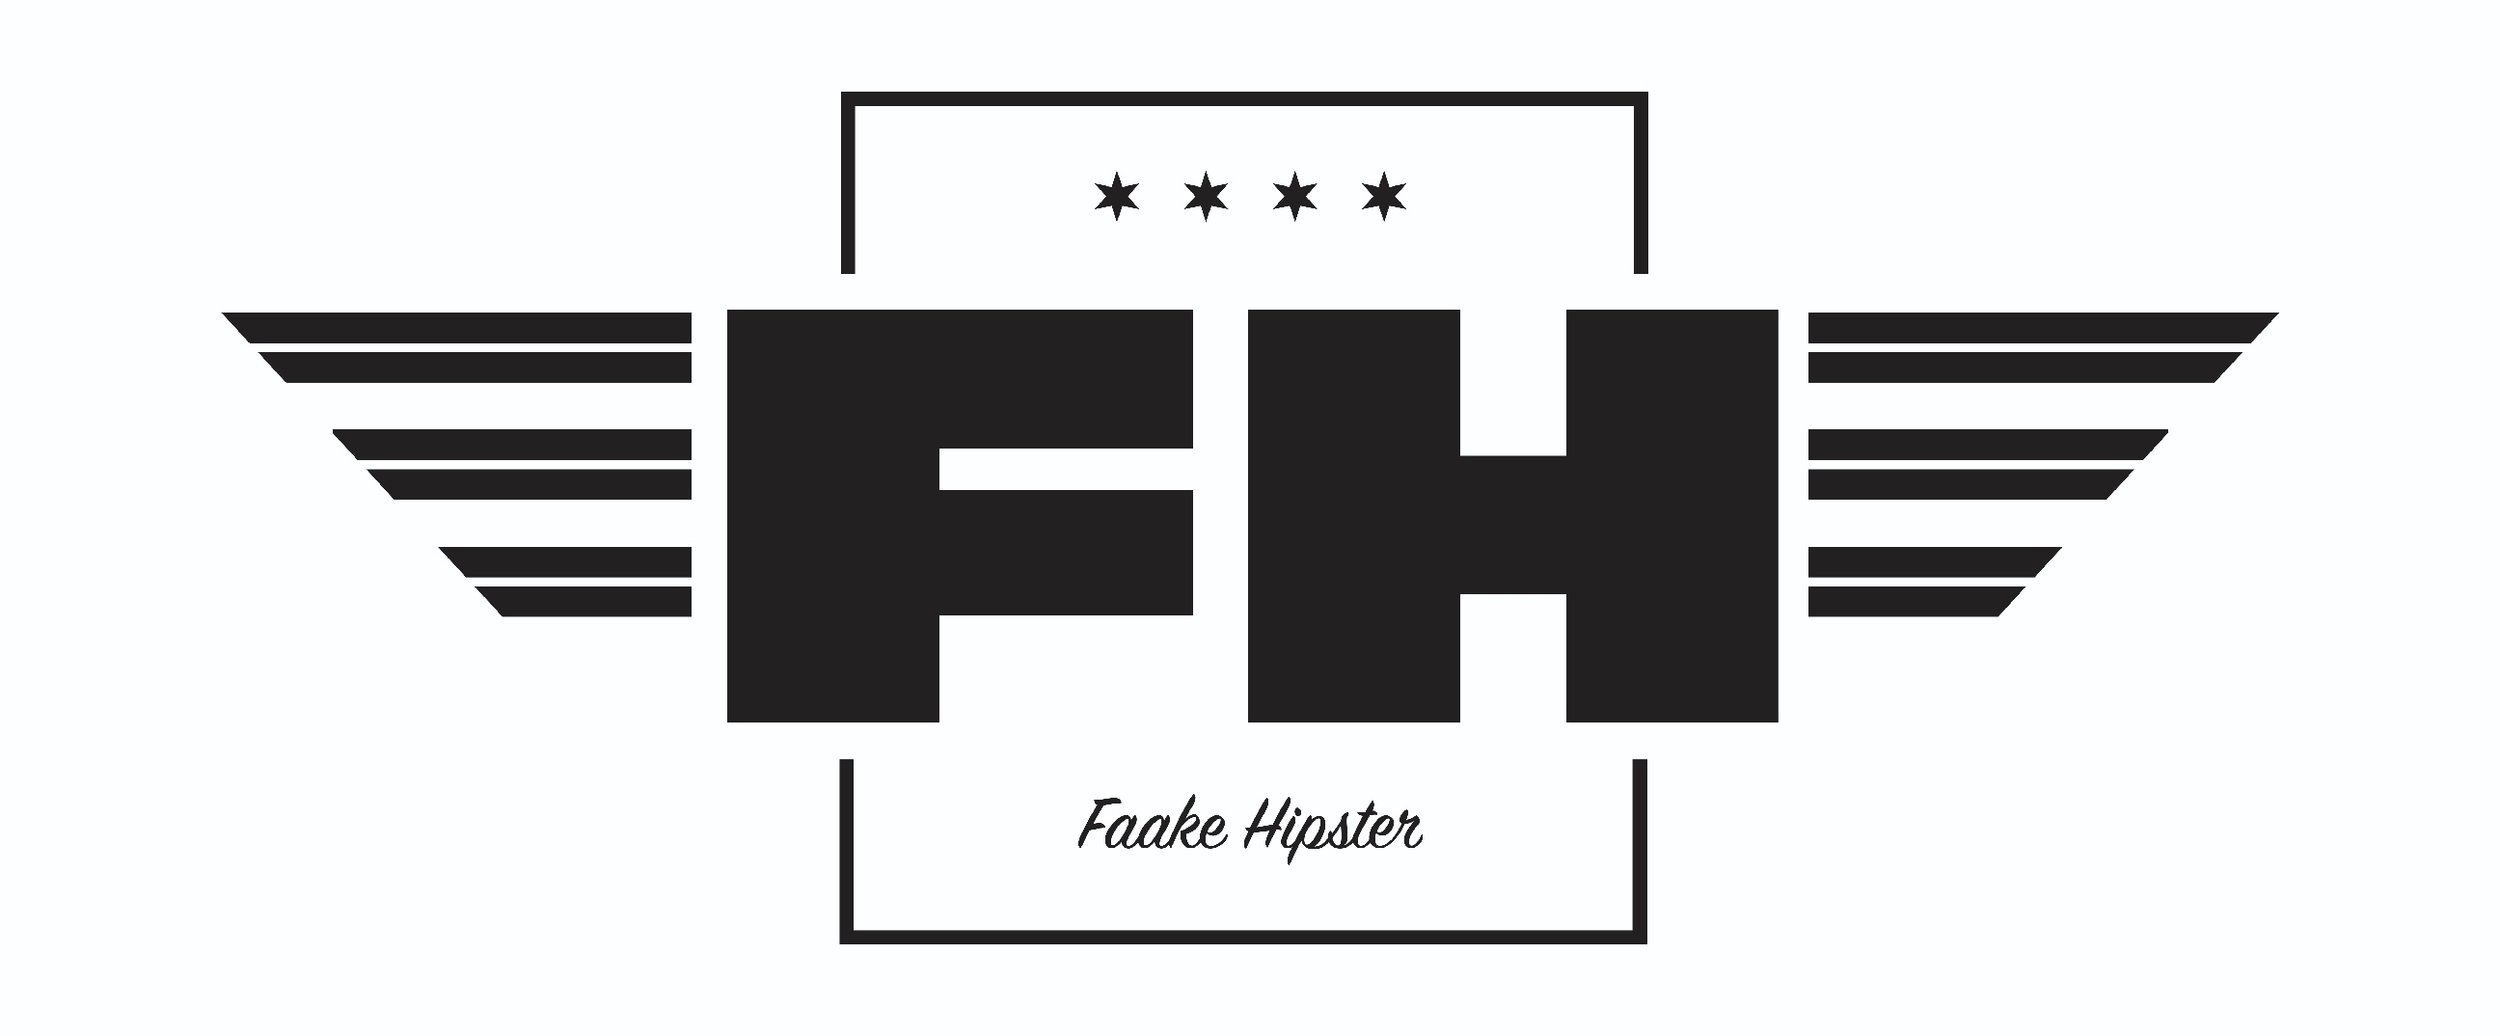 The Faake Hipster - mission: encouraging your ears to discover new sounds // a music brand bringing you the experience behind it all //